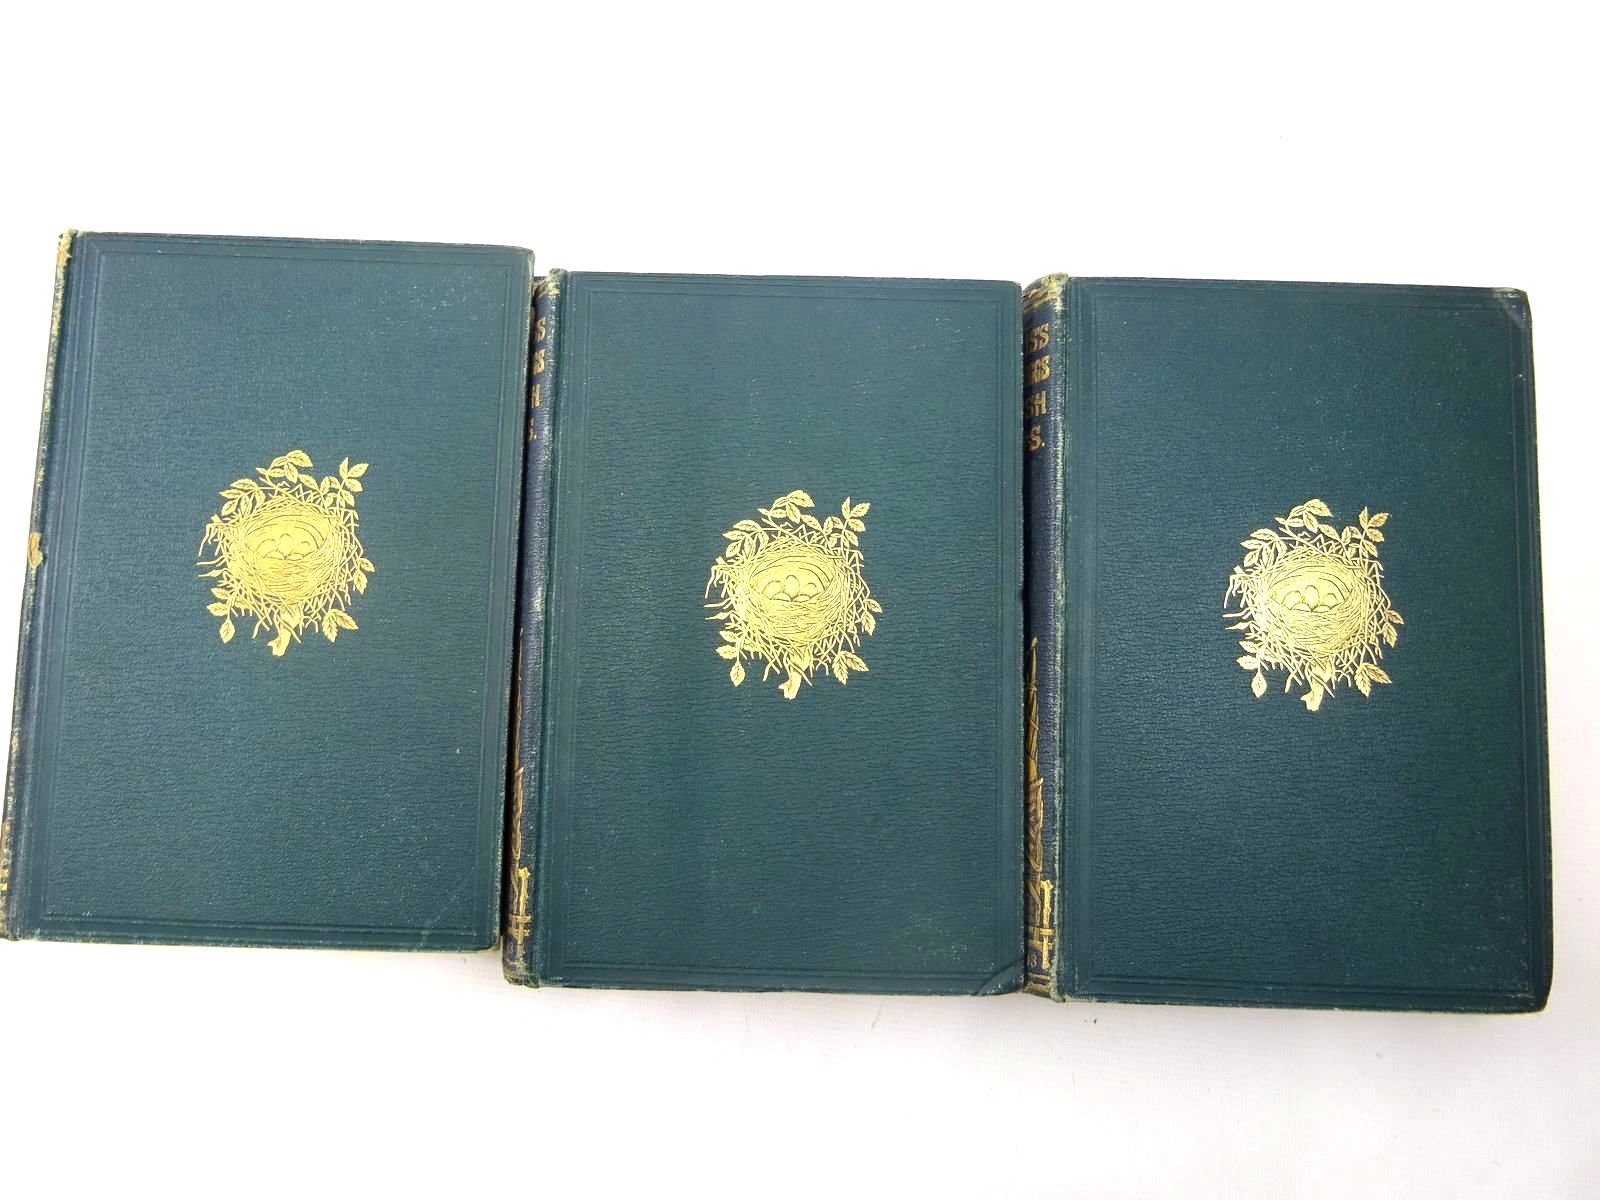 Photo of A NATURAL HISTORY OF THE NESTS AND EGGS OF BRITISH BIRDS (3 VOLUMES) written by Morris, F.O. published by John C. Nimmo (STOCK CODE: 2128160)  for sale by Stella & Rose's Books